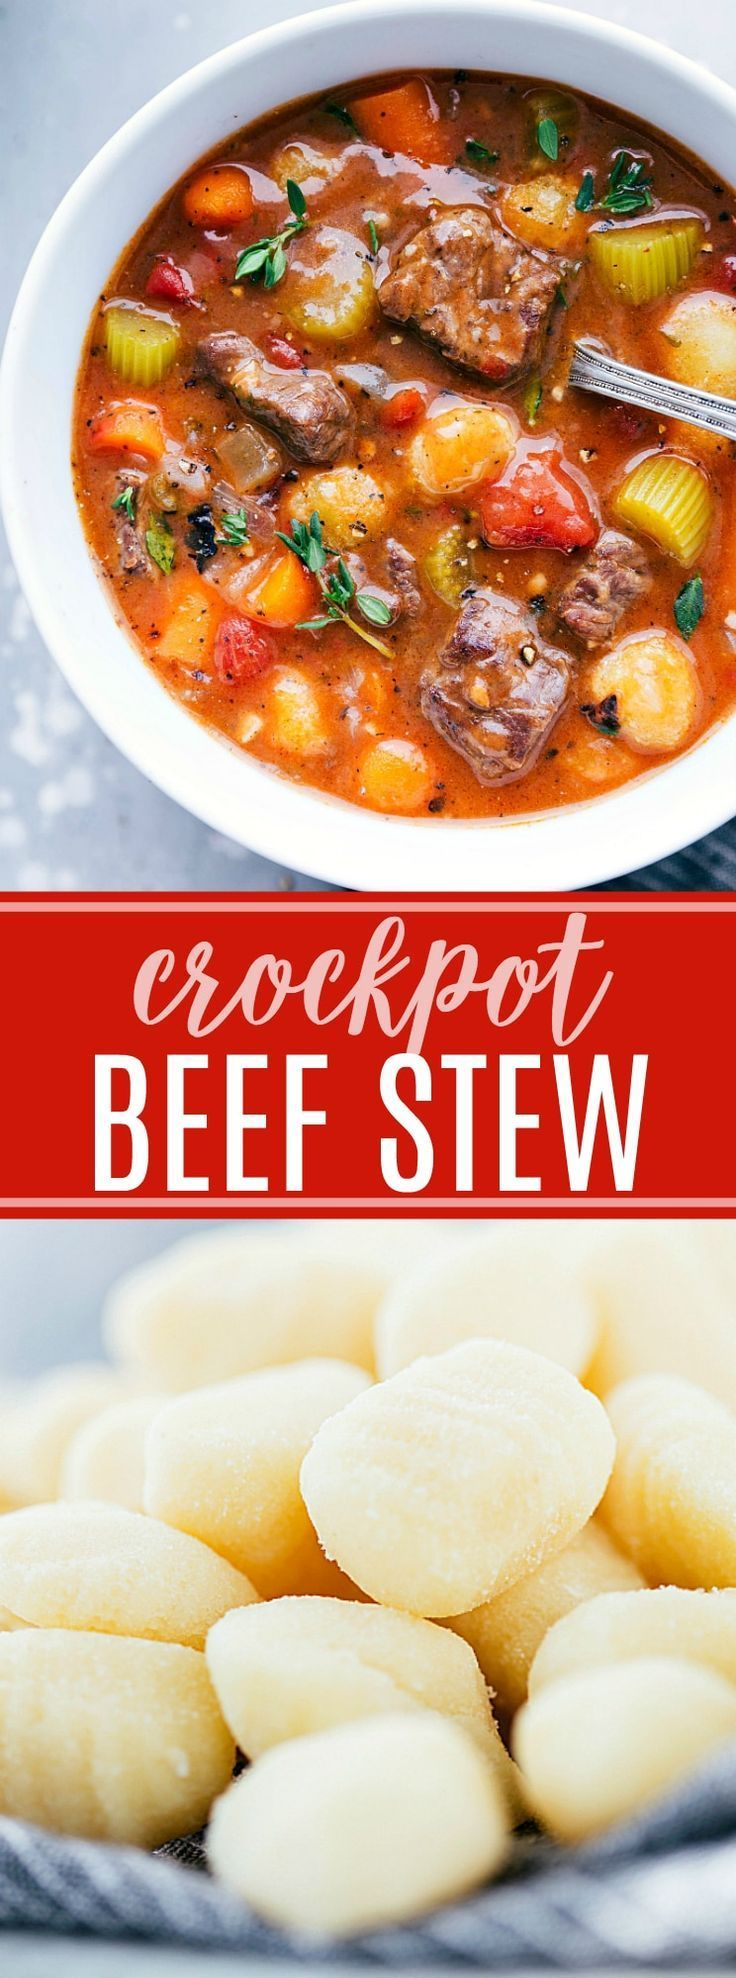 The ultimate BEST EVER crockpot beef stew with gnocchi! Recipe via chelseasmessyapron.com | #beef #stew #crockpot #slowcooker #gnocchi #best #dinner #soup #easy #delicious #familyfriendly #carrots #celery